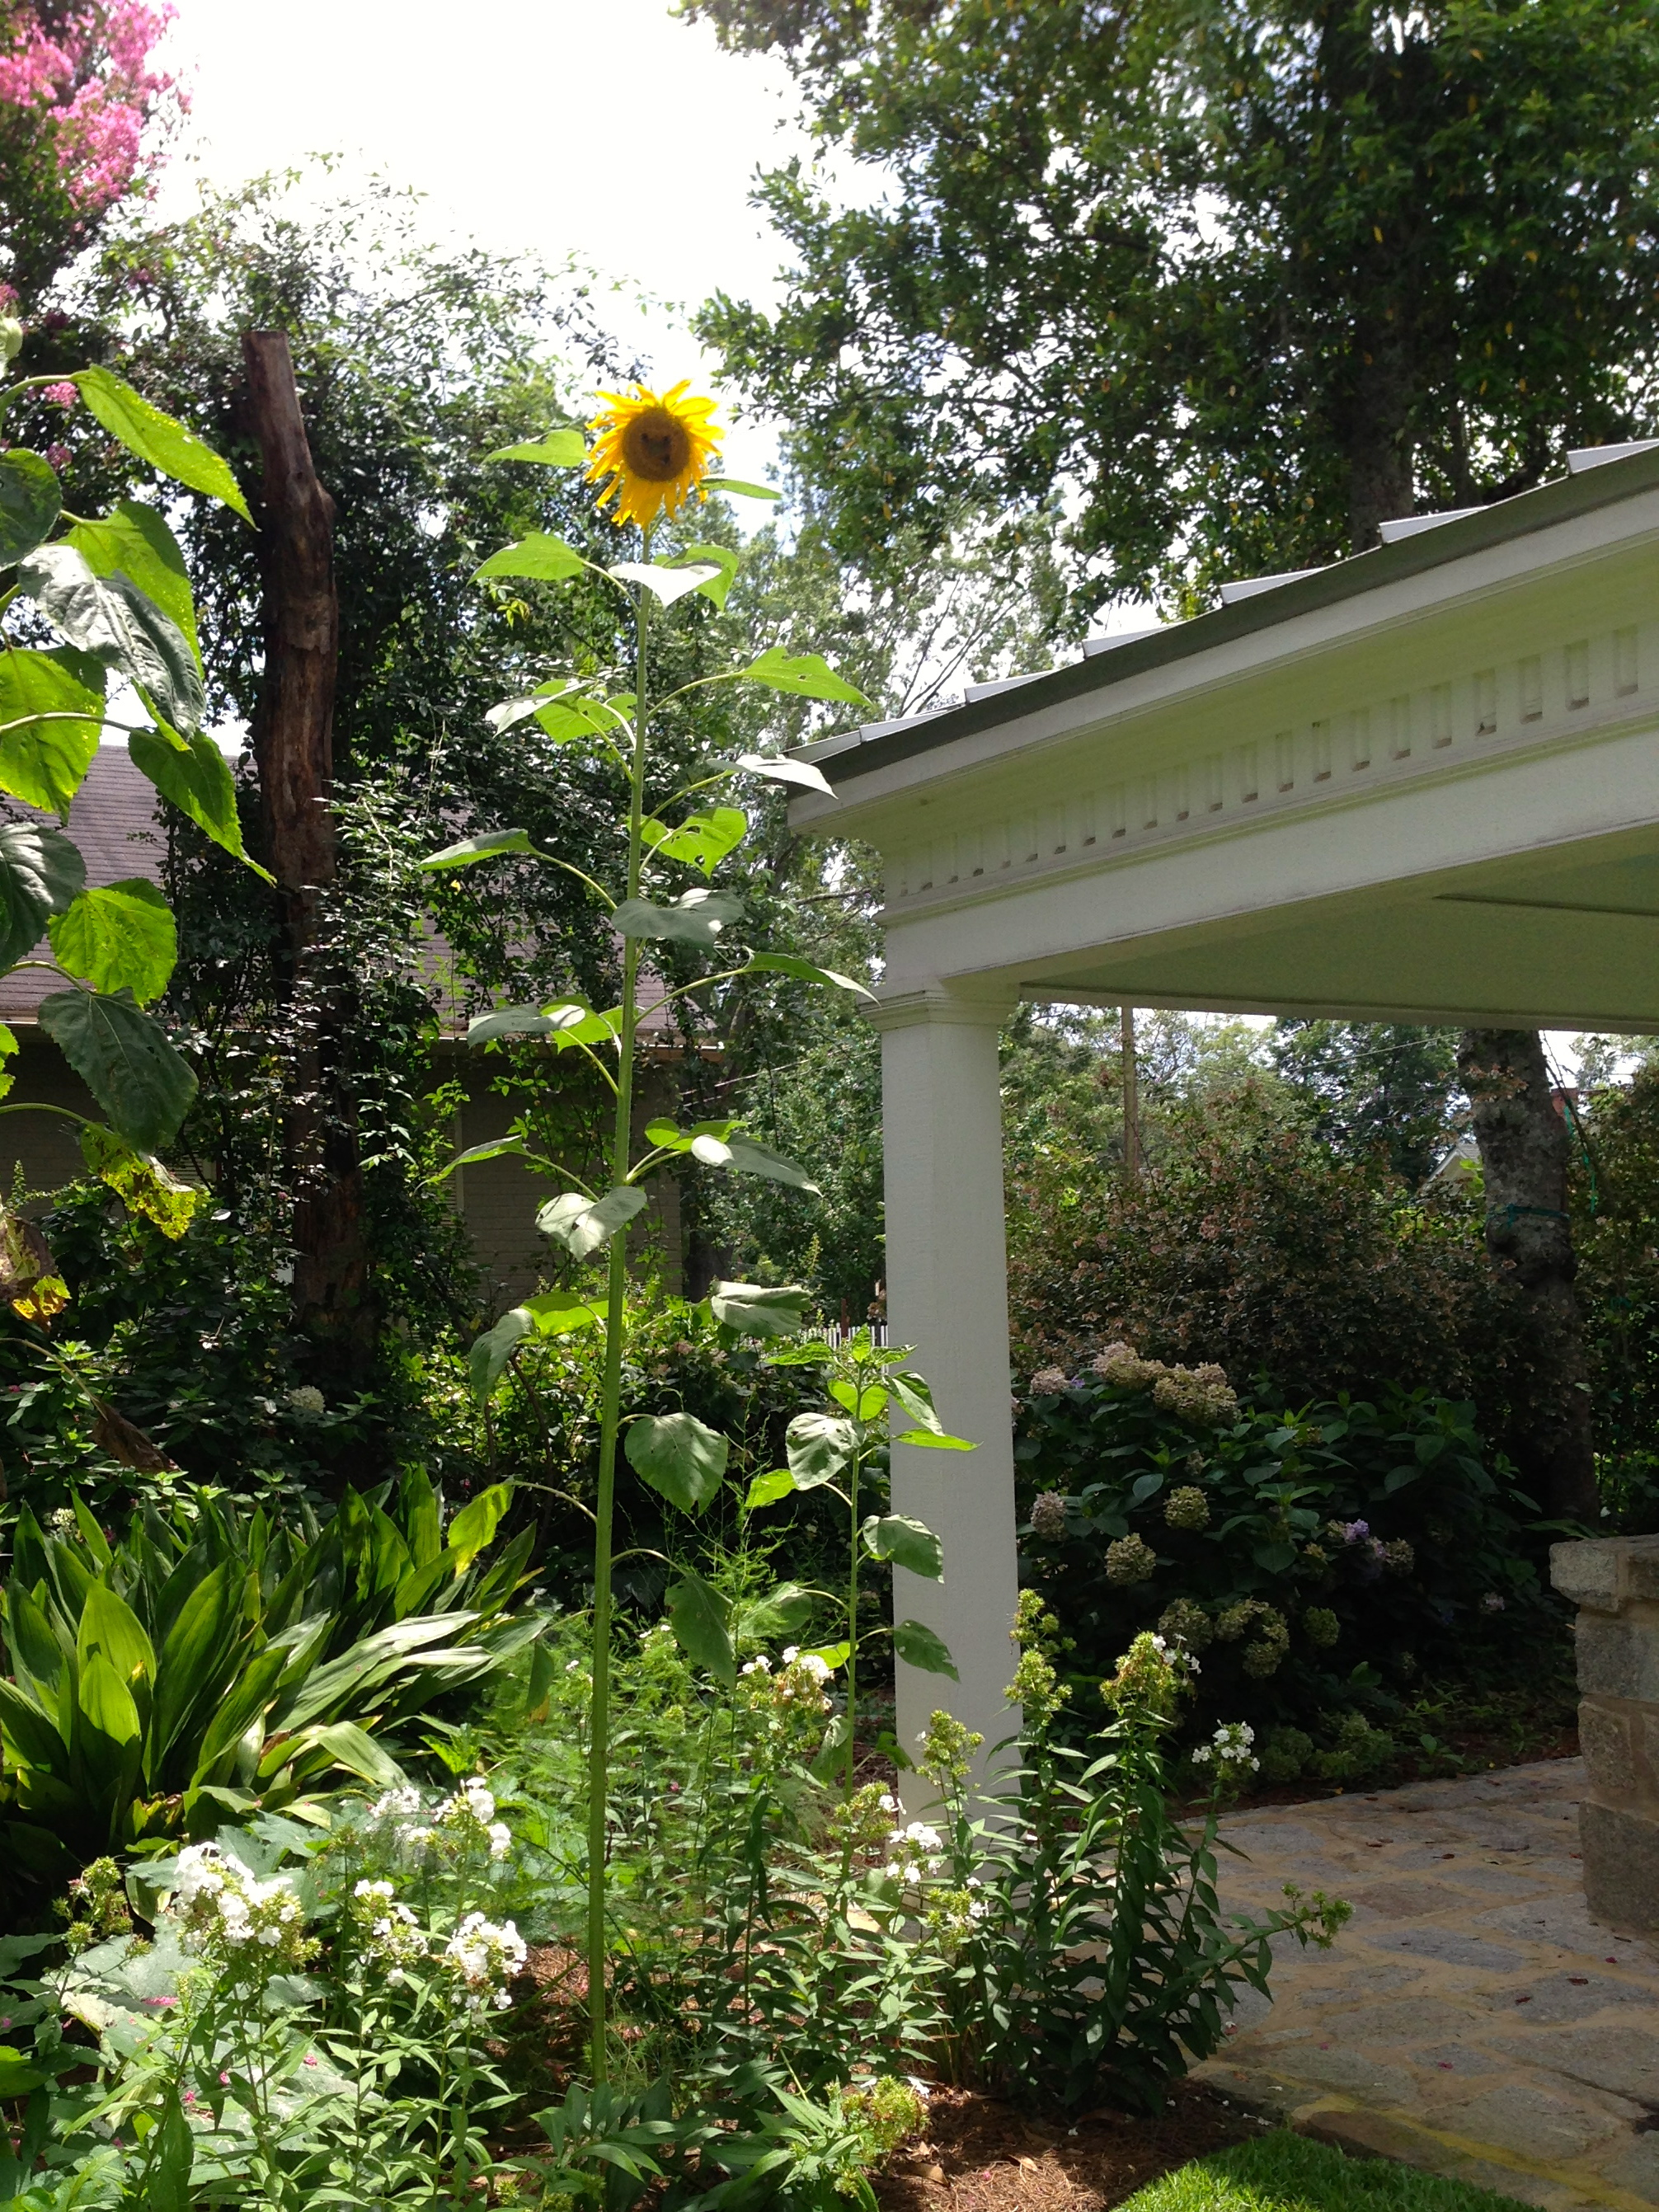 This sunflower has surpassed the height of the old well house as it seems to reach for the sky.